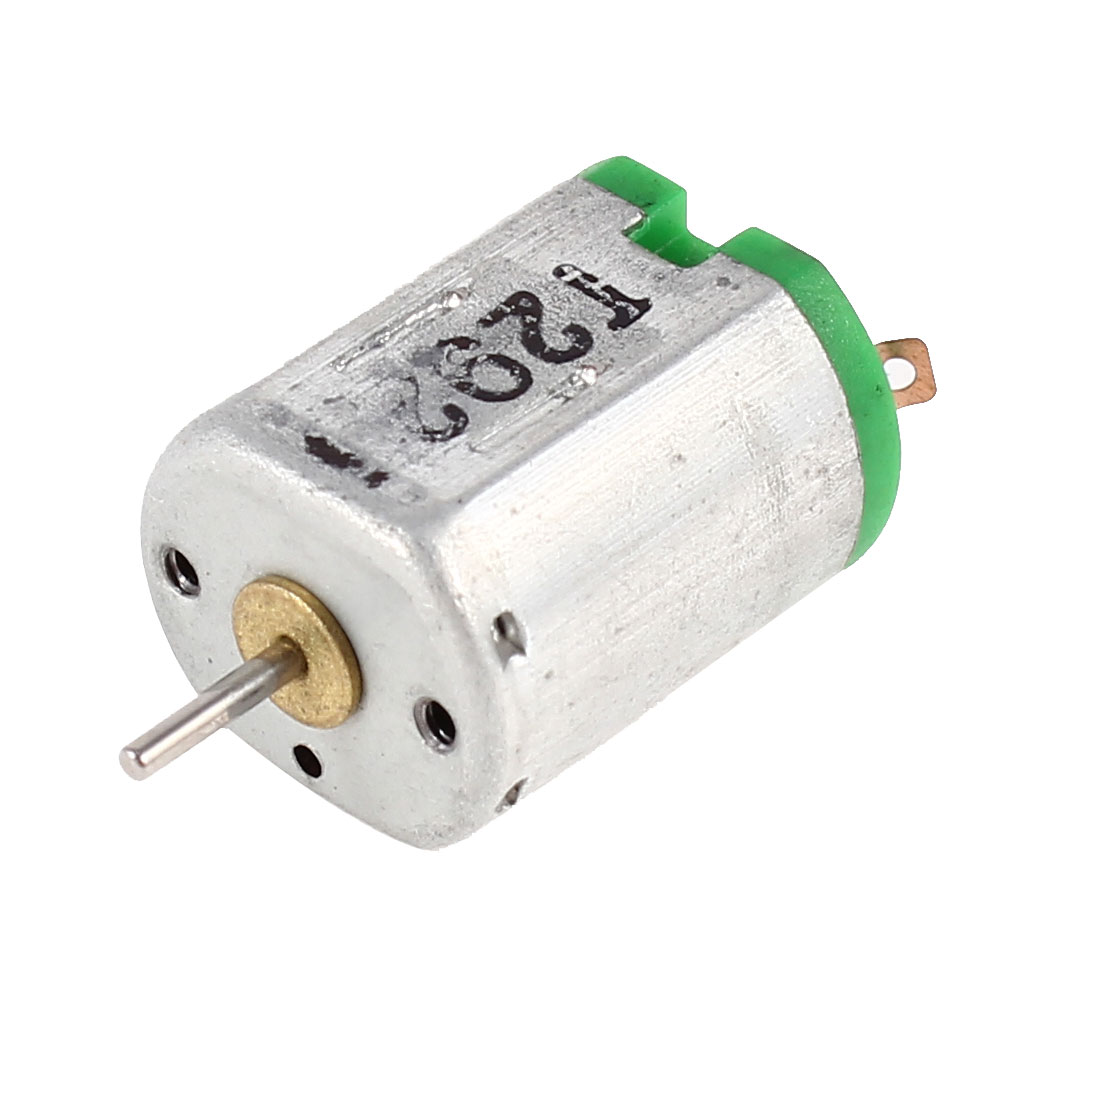 FF-N20 3V 25000RPM Speed 1mmx5mm Shaft DIY Miniature Magnet DC Motor Replacement